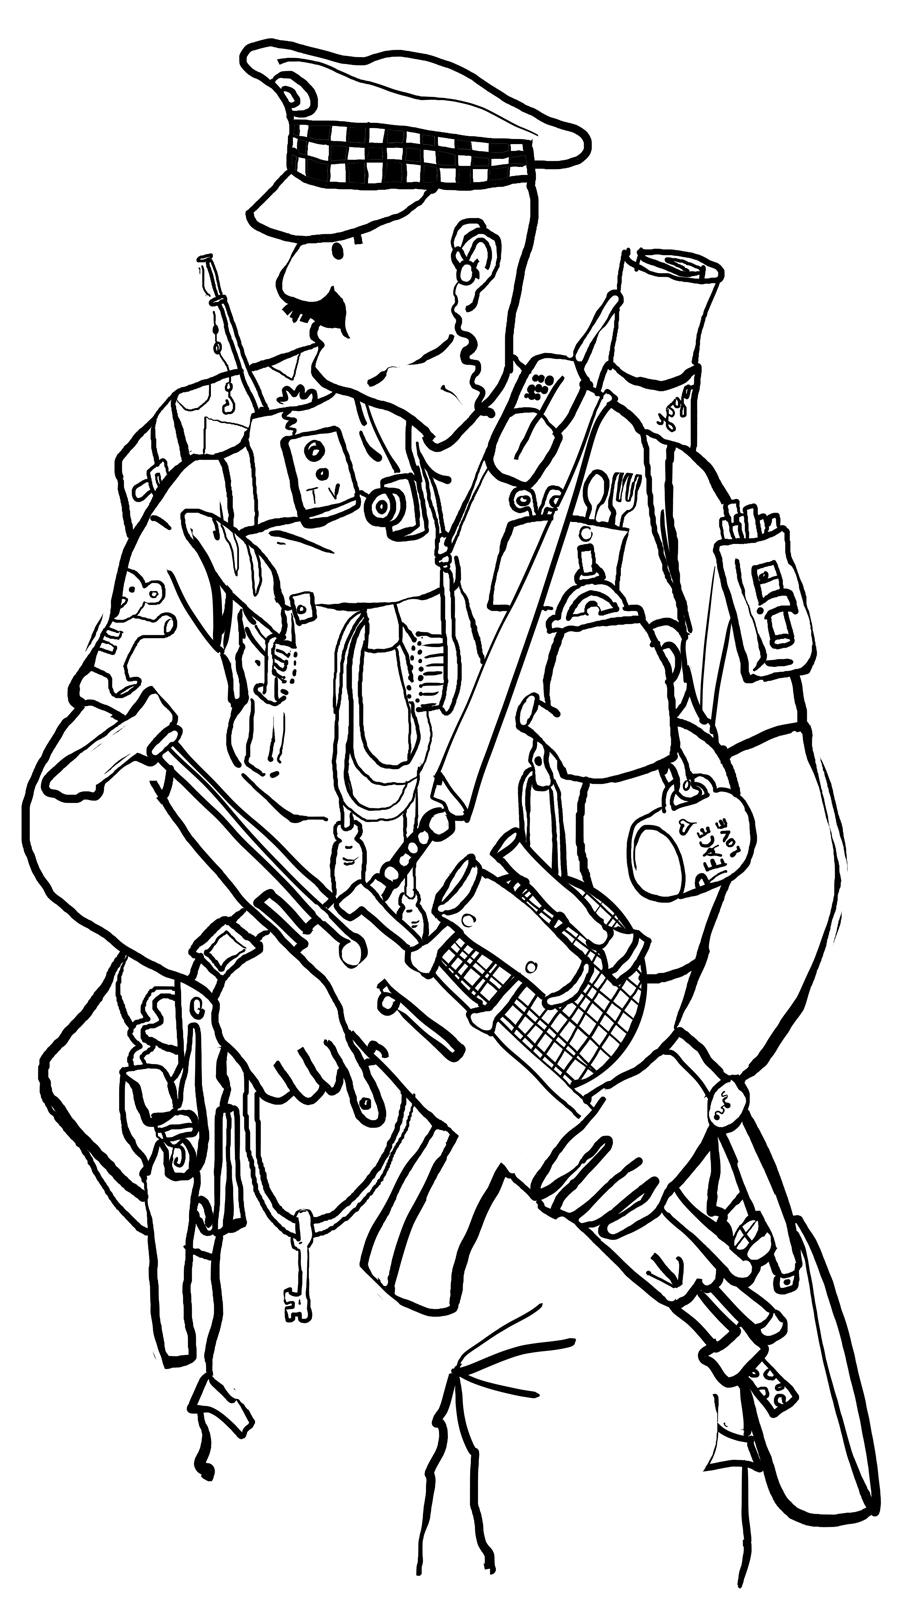 Free Printable Police Officer Coloring Pages - High Quality ... - AZ ...